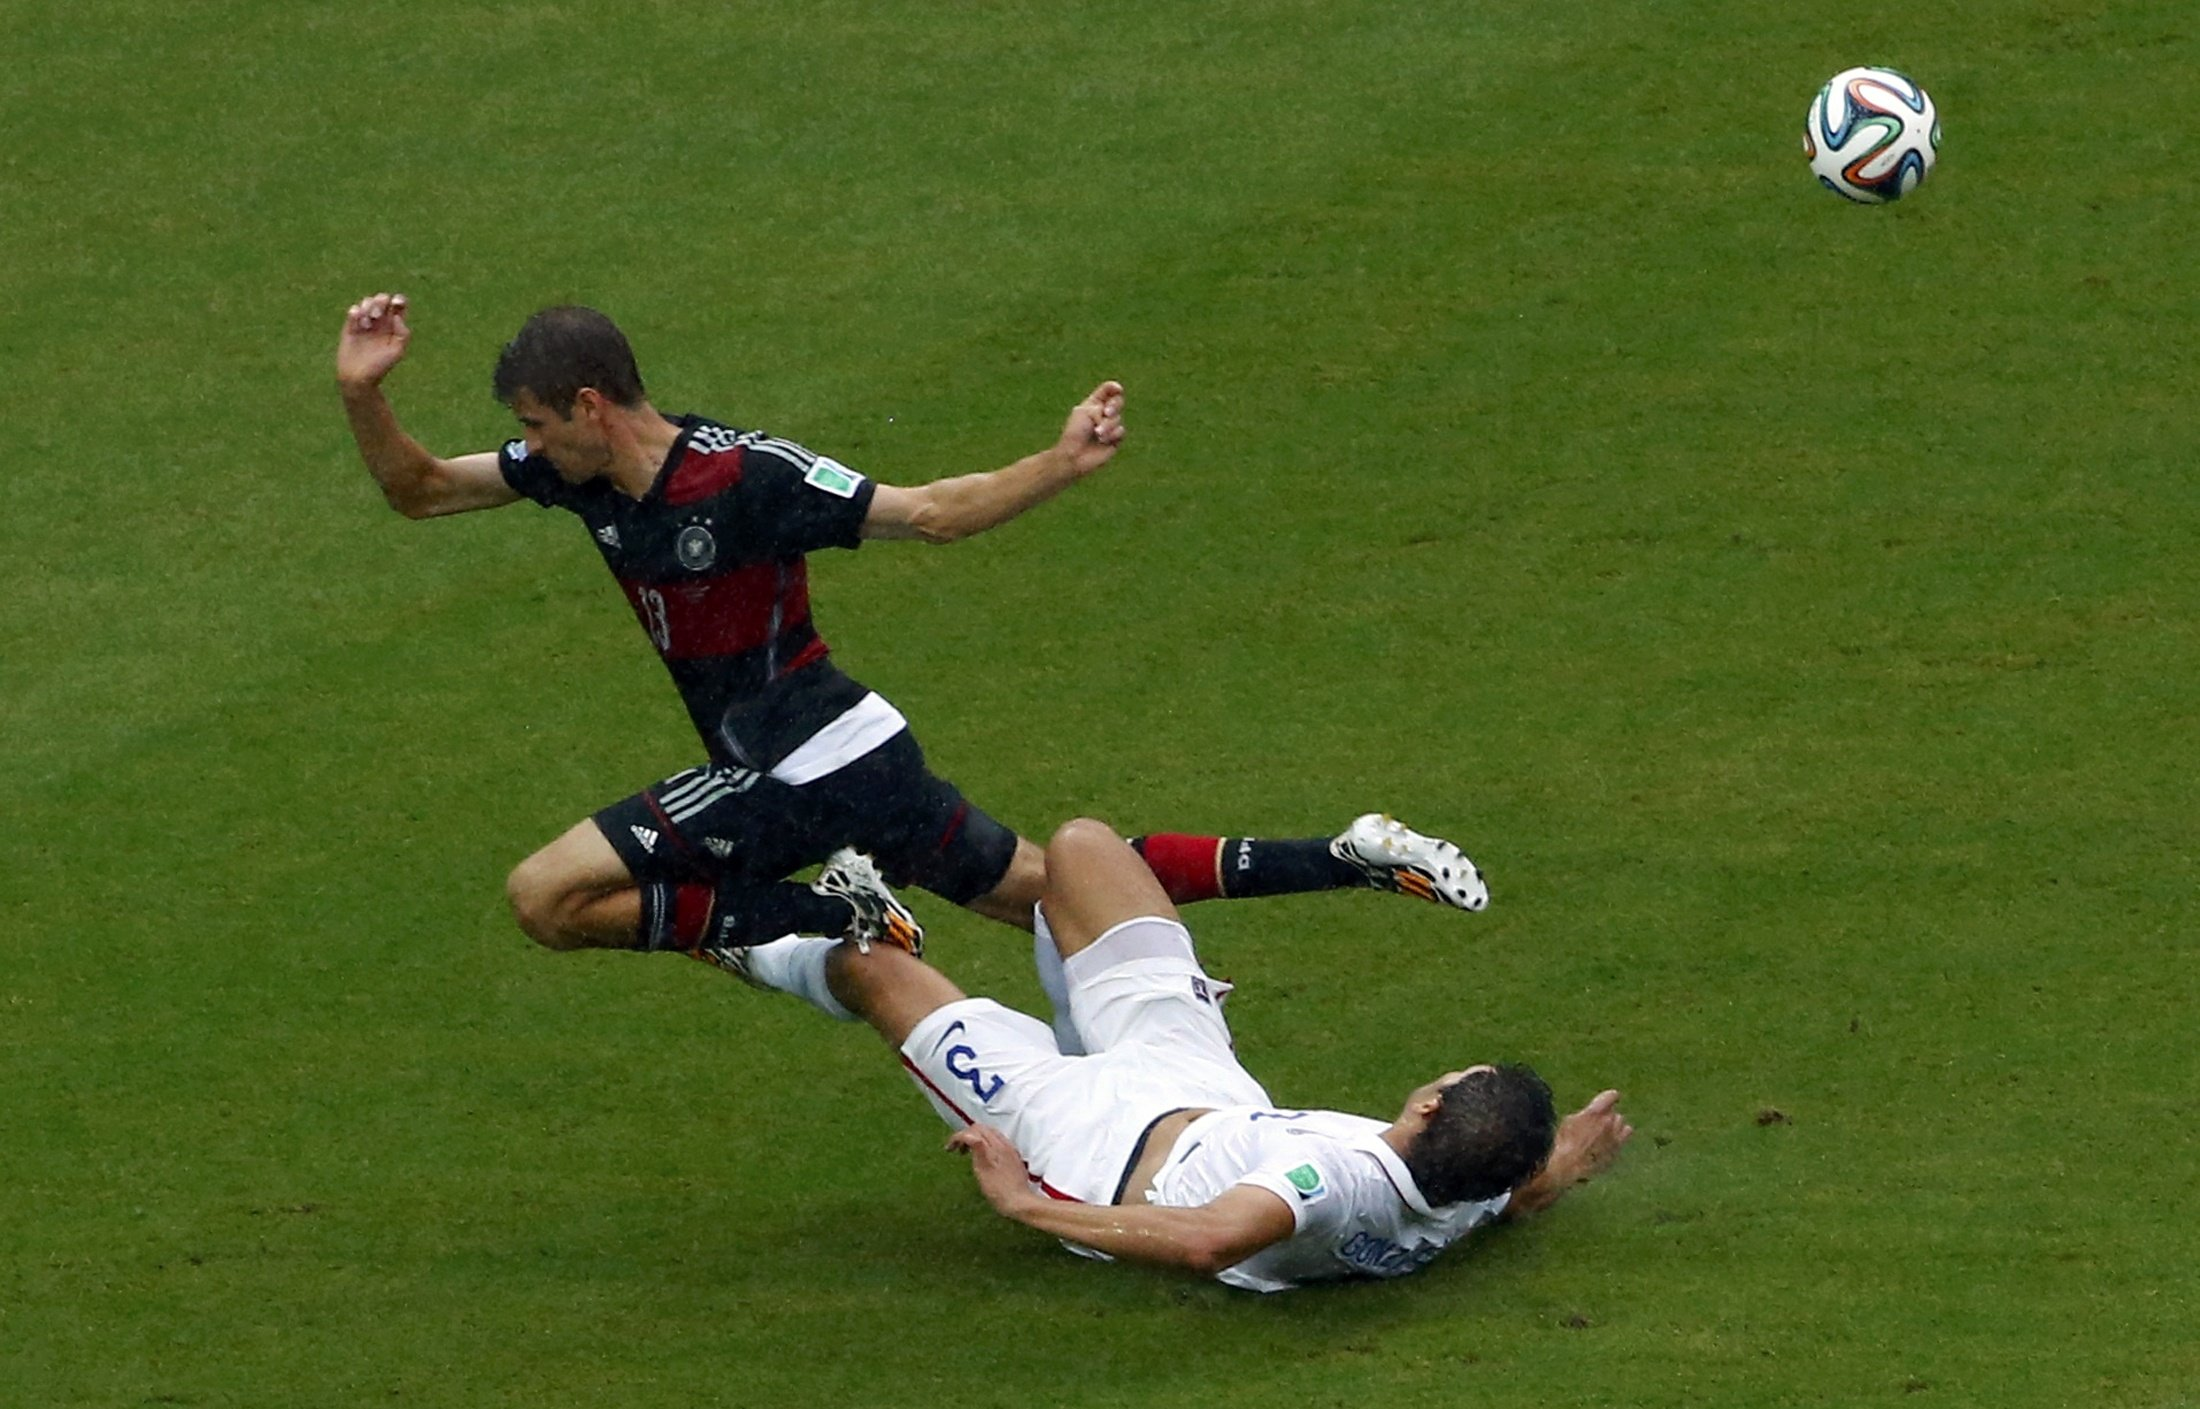 Germany's Thomas Mueller falls over Omar Gonzalez of the U.S. during their 2014 World Cup Group G soccer match at the Pernambuco arena in Recife, Brazil on June 26, 2014.